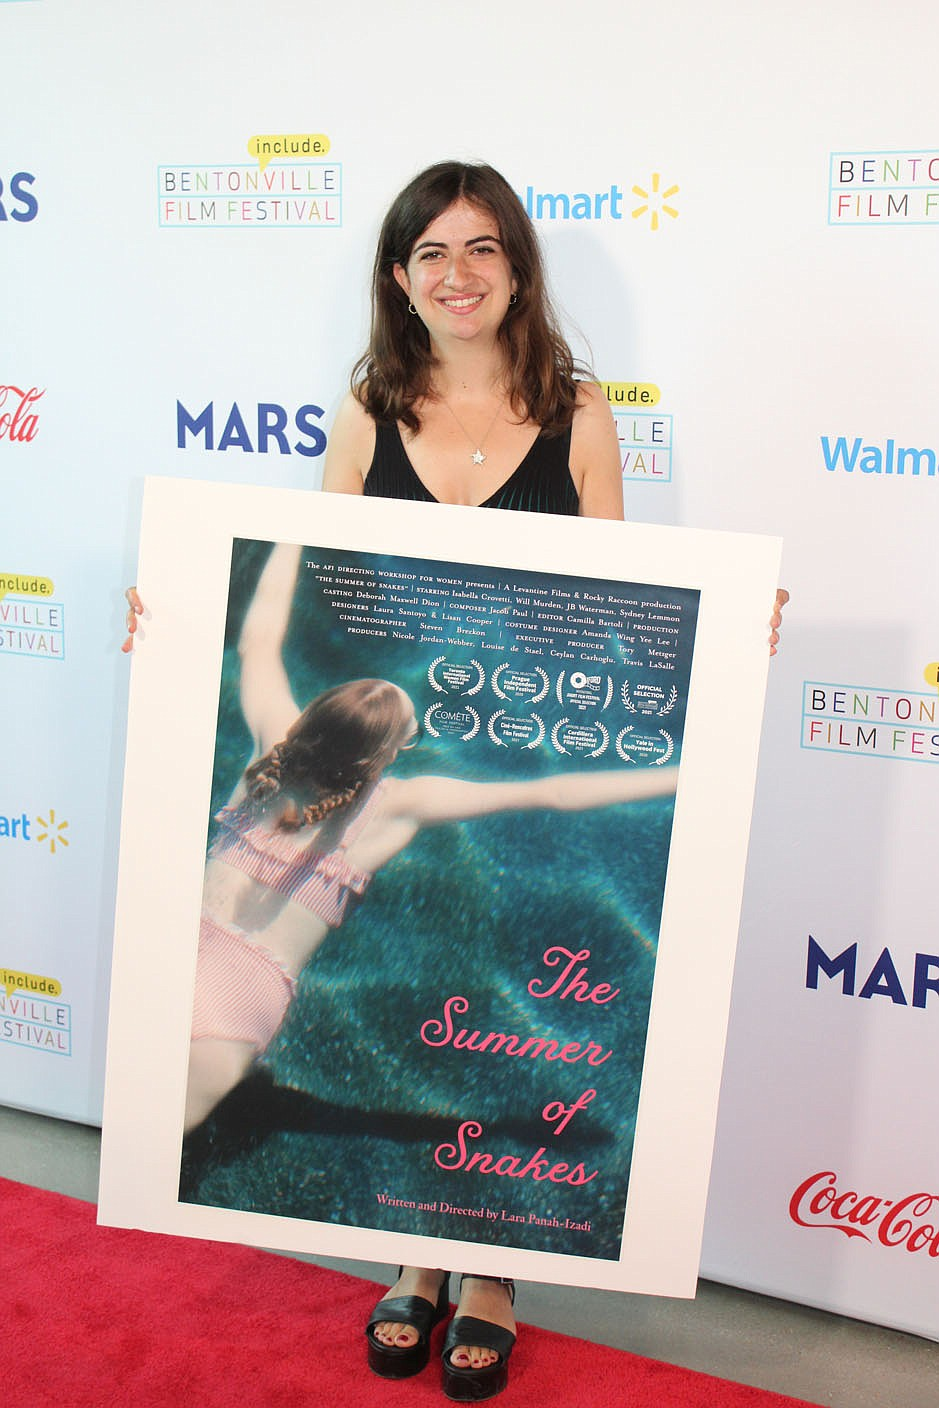 """Director Lara Panah-Izadi stands with a poster of her Bentonville Film Festival entry, """"The Summer of Snakes."""" (NWA Democrat-Gazette/Carin Schoppmeyer)"""